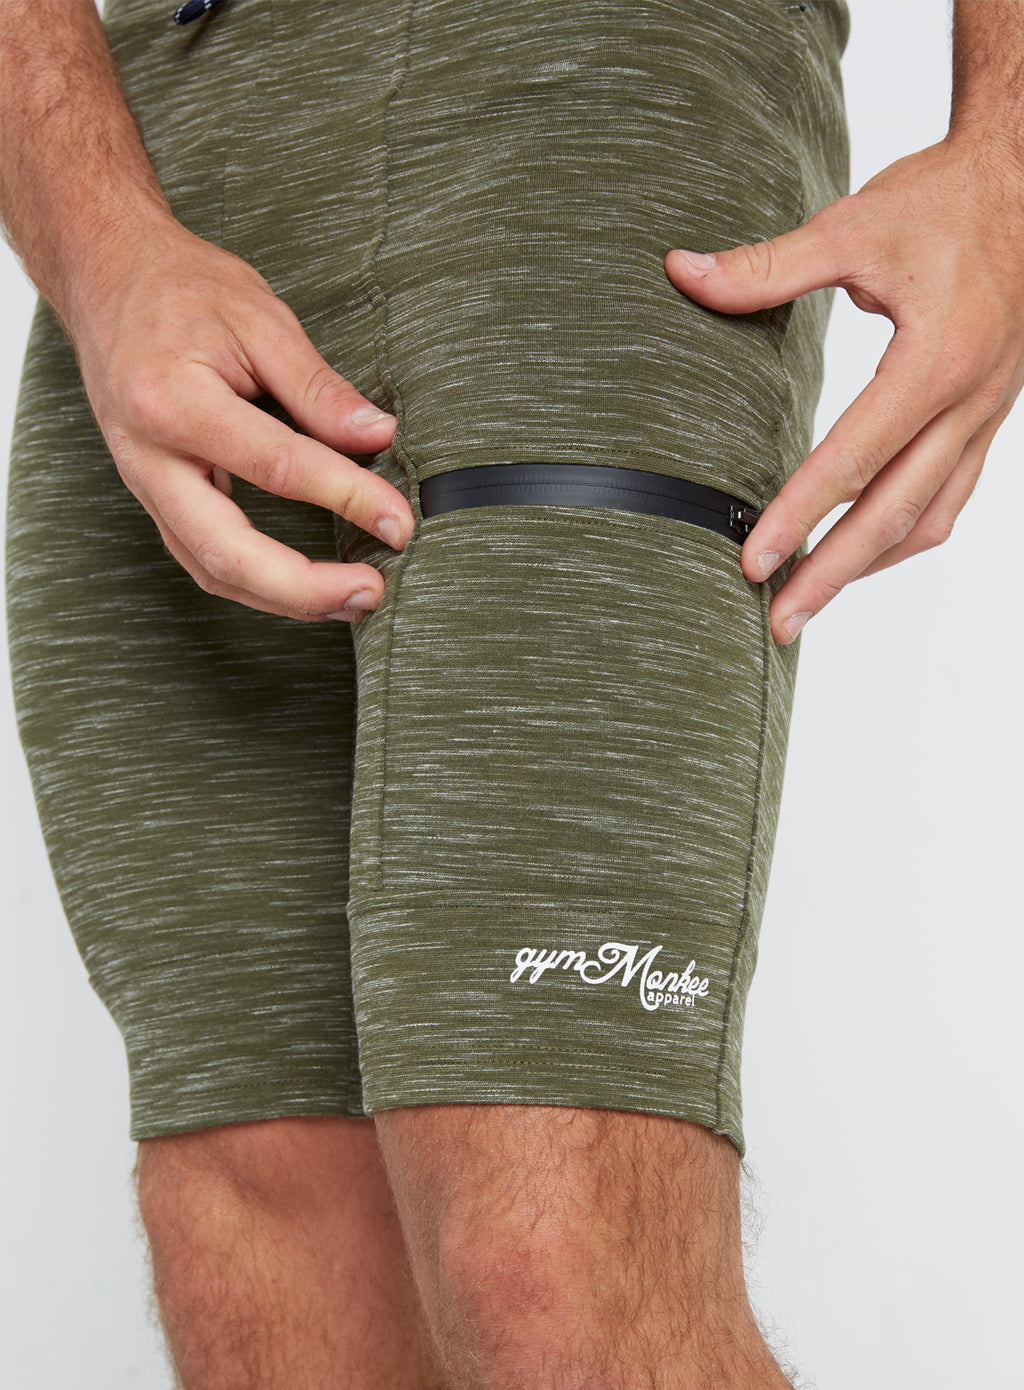 Gym Monkee - Olive Striped Shorts ZIPPED POCKETS